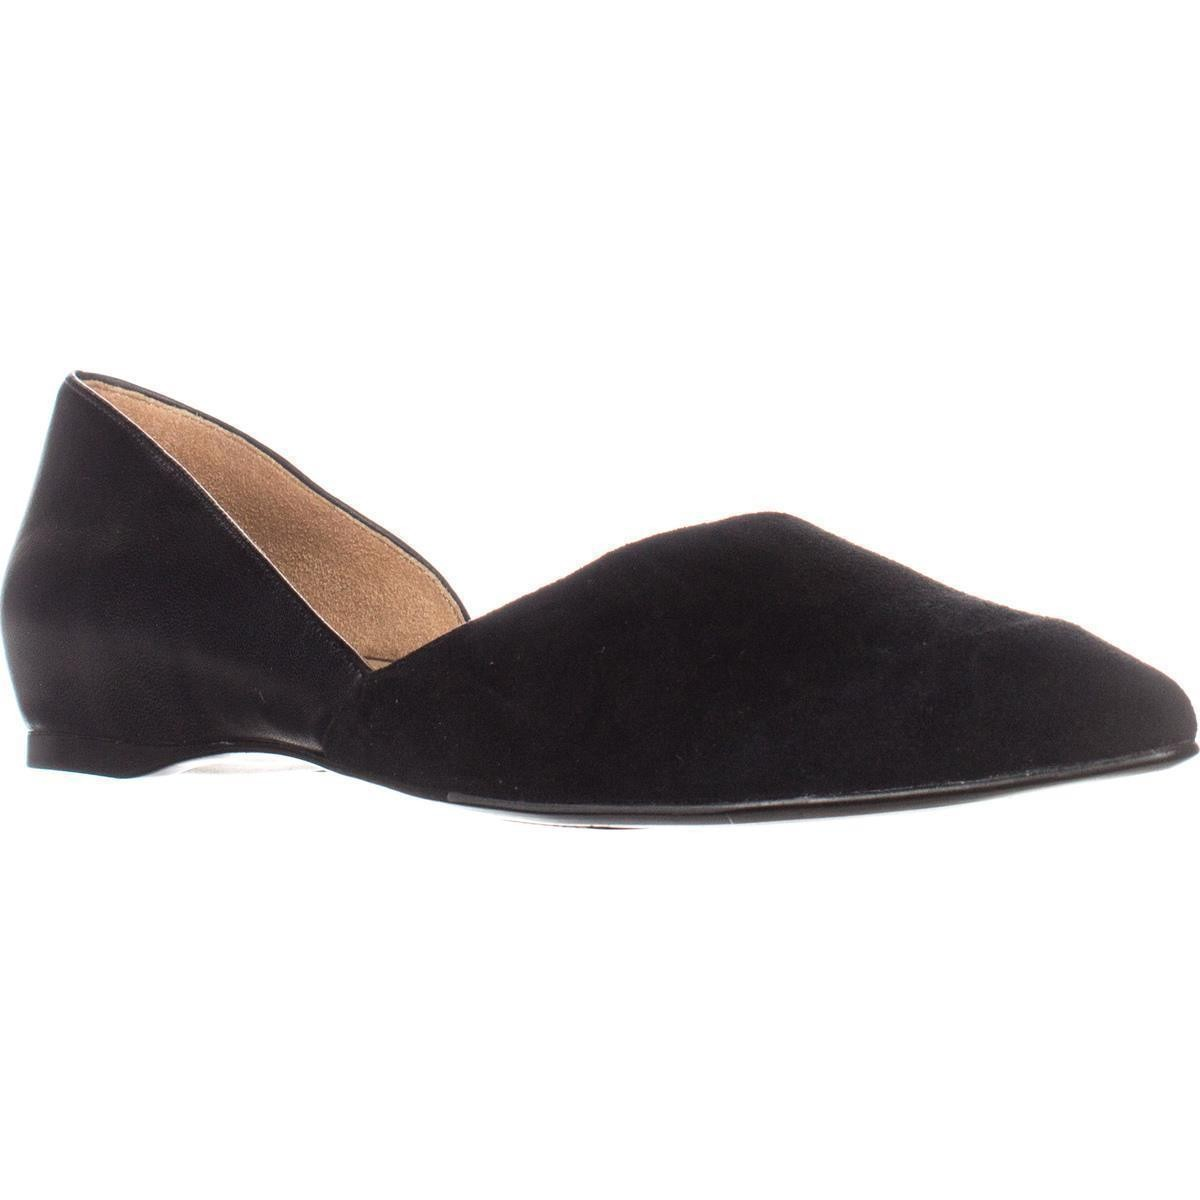 Pointed Toe Flats naturalizer samantha pointed toe flats, black leather ZFJEHNM